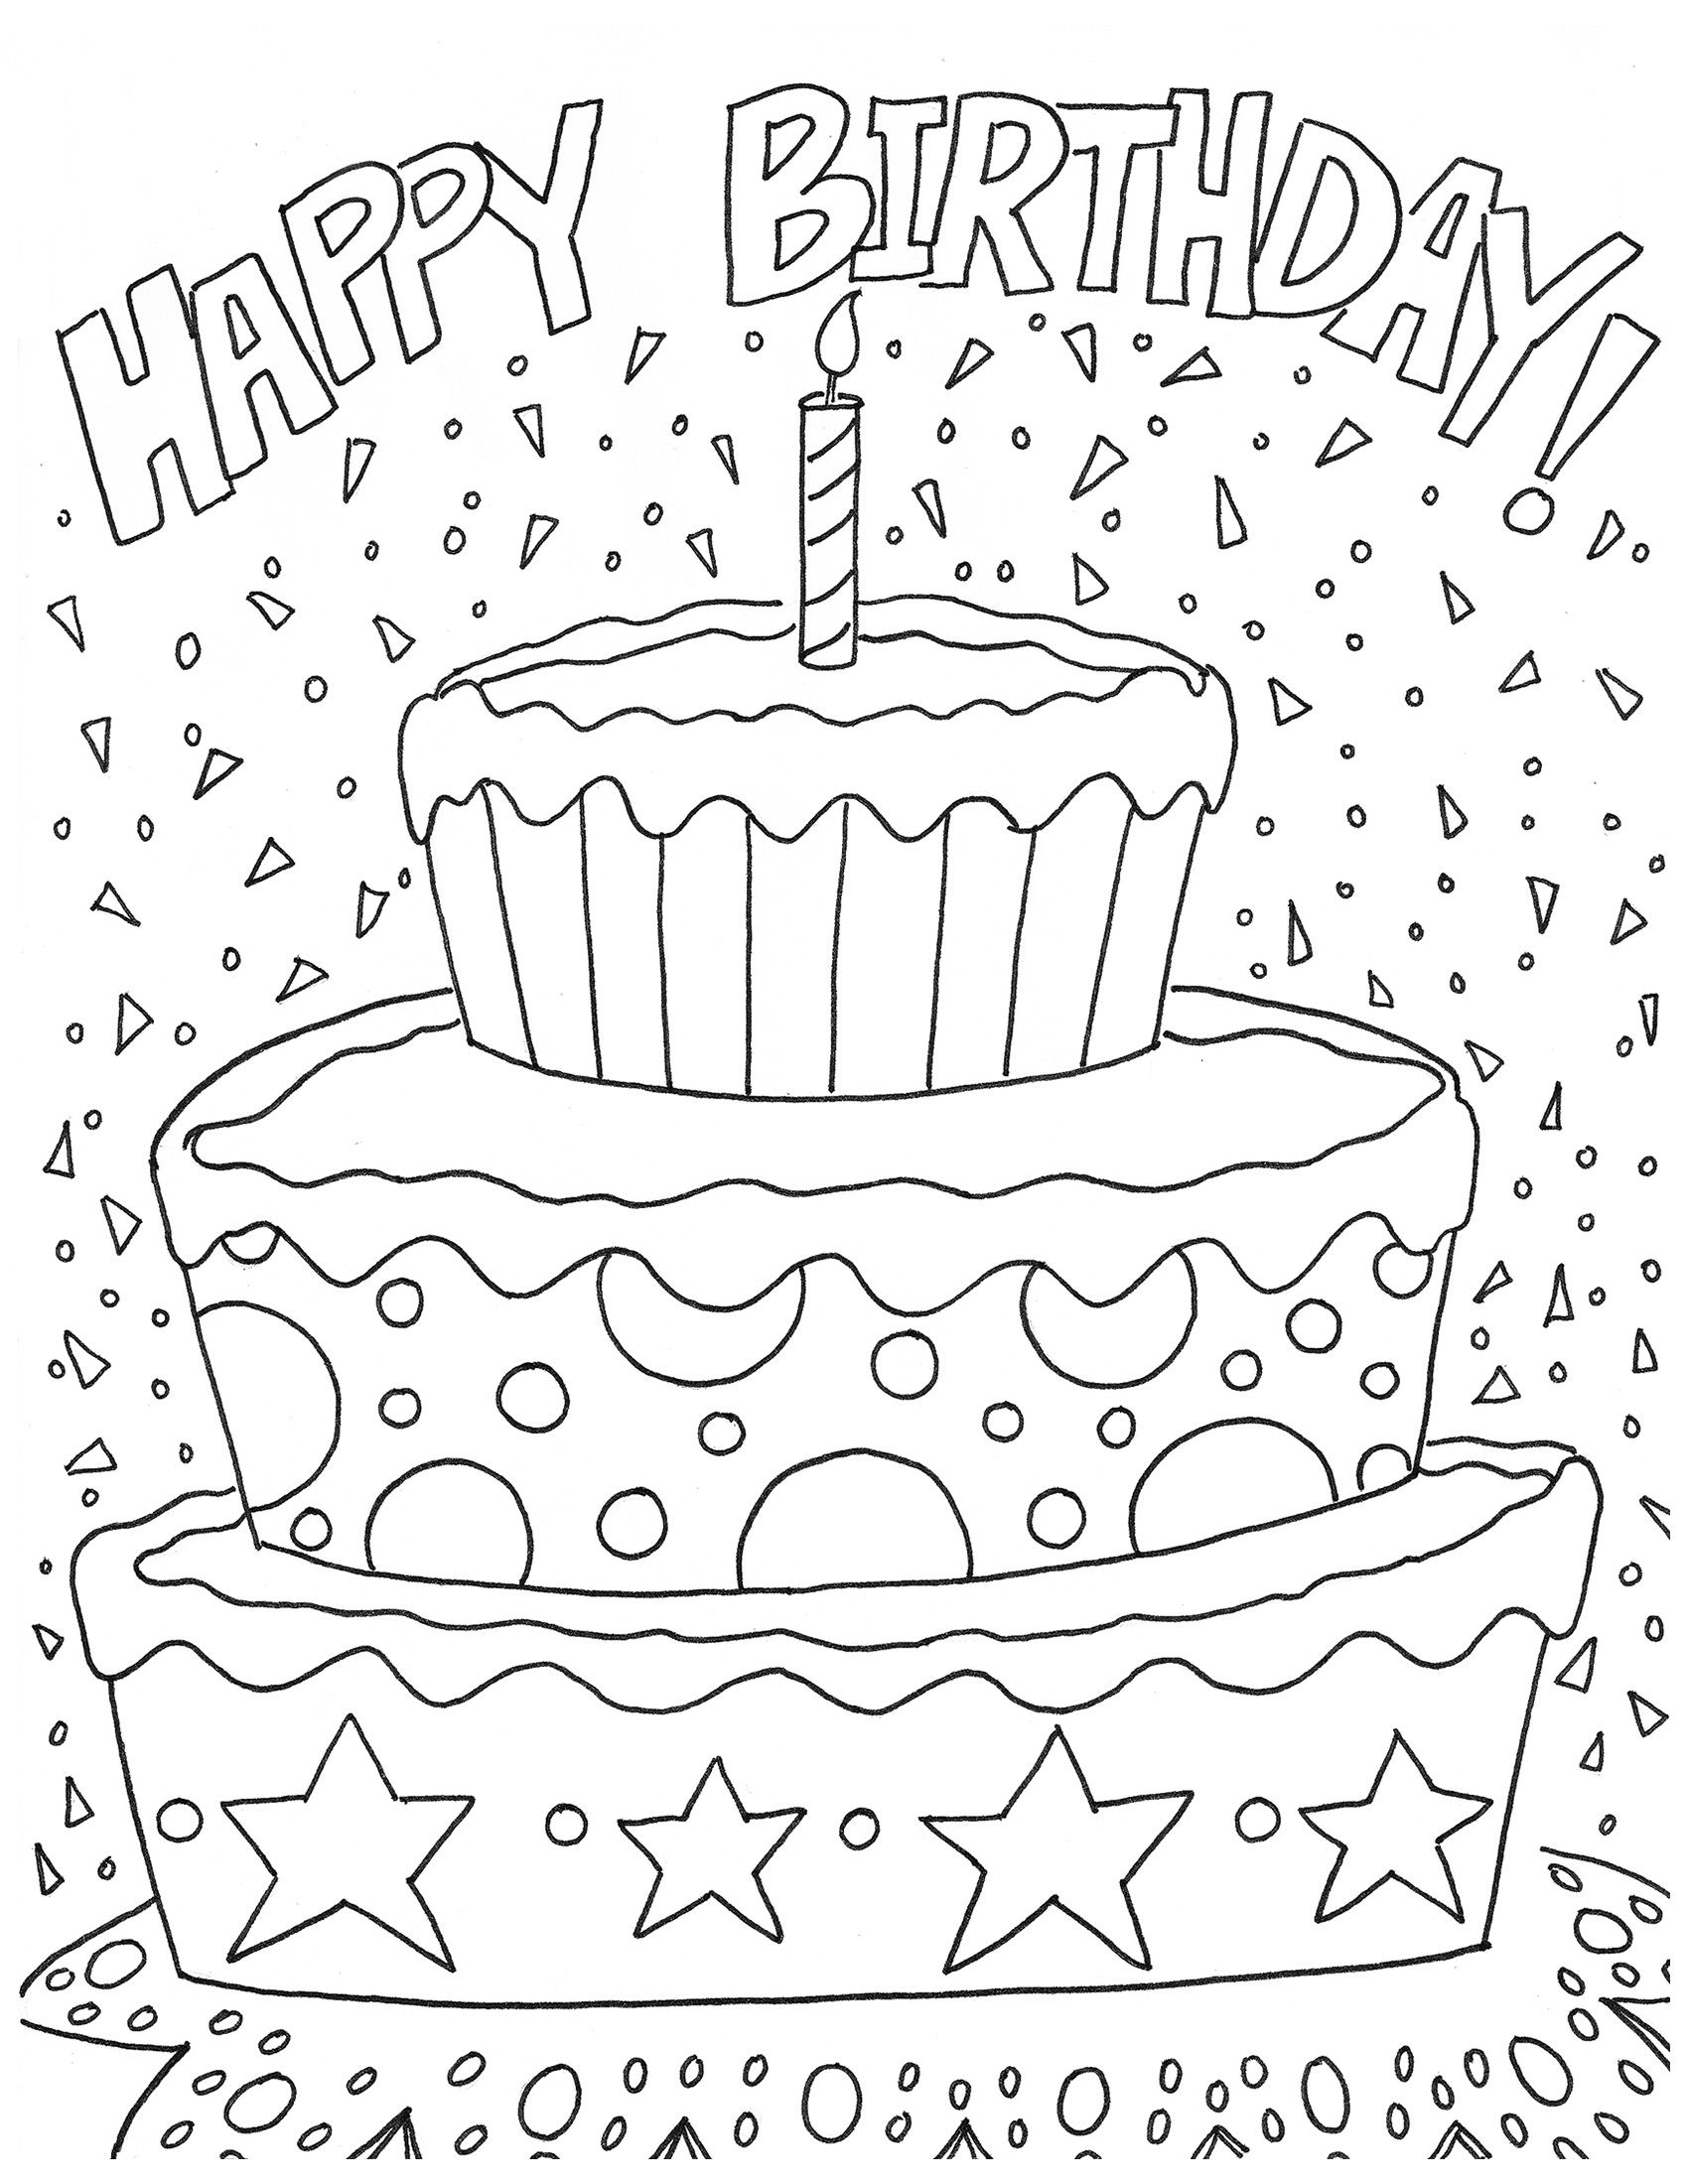 Happy Birthday Daddy Coloring Happy Birthday Coloring Pages